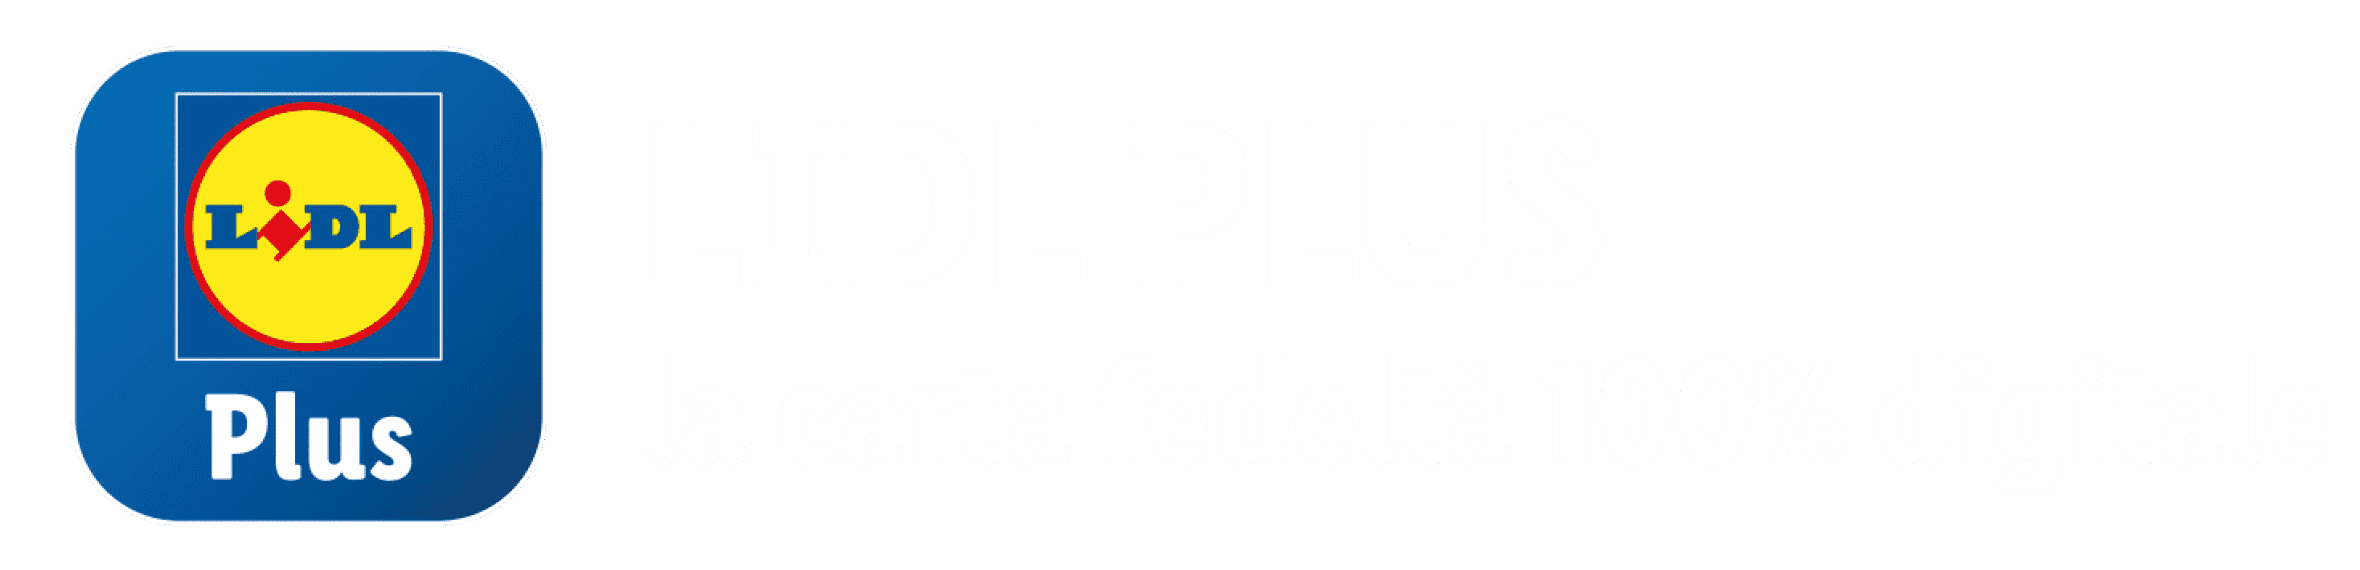 Lidl Plus – la carta fedeltà 100% digitale